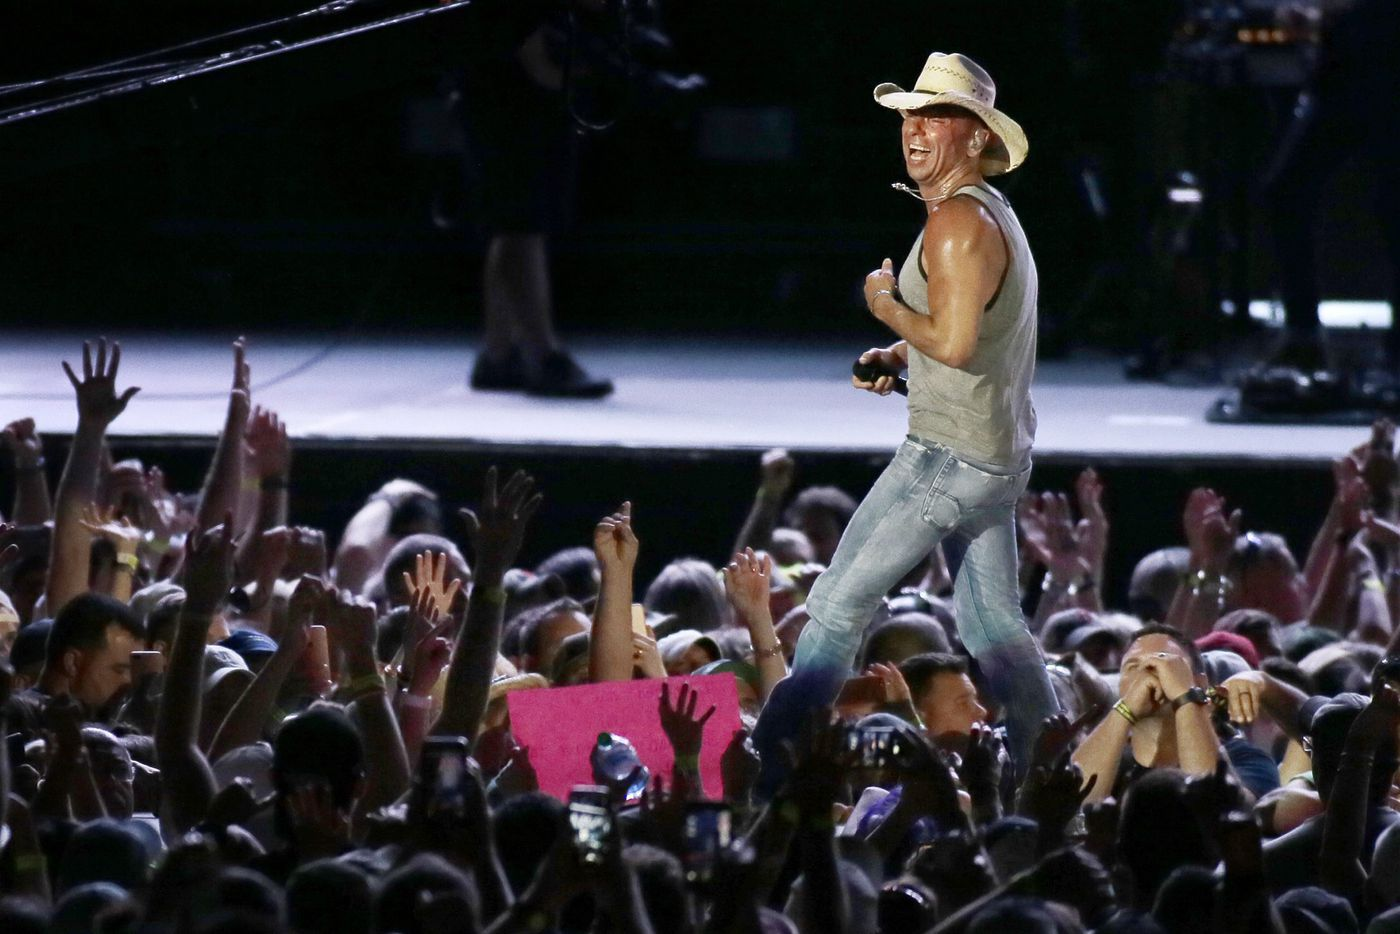 Kenny Chesney brings Eagles, Lombardi trophy onstage at Lincoln Financial Field show